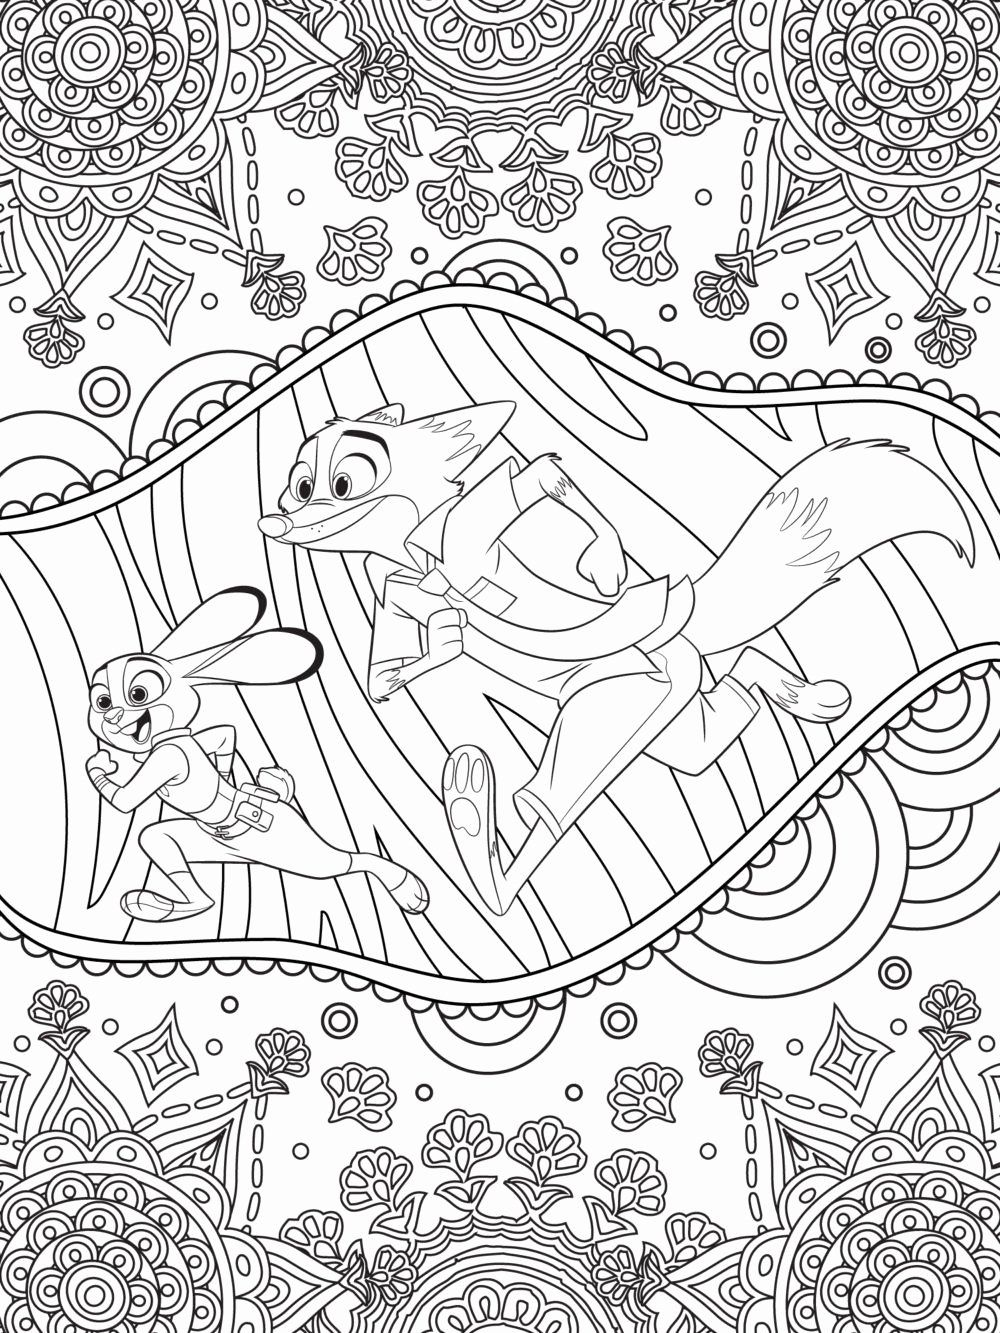 Disney Coloring Pages For Adults Unique Celebrate National Coloring Book Day With In 2020 Zootopia Coloring Pages Free Disney Coloring Pages Mandala Coloring Pages